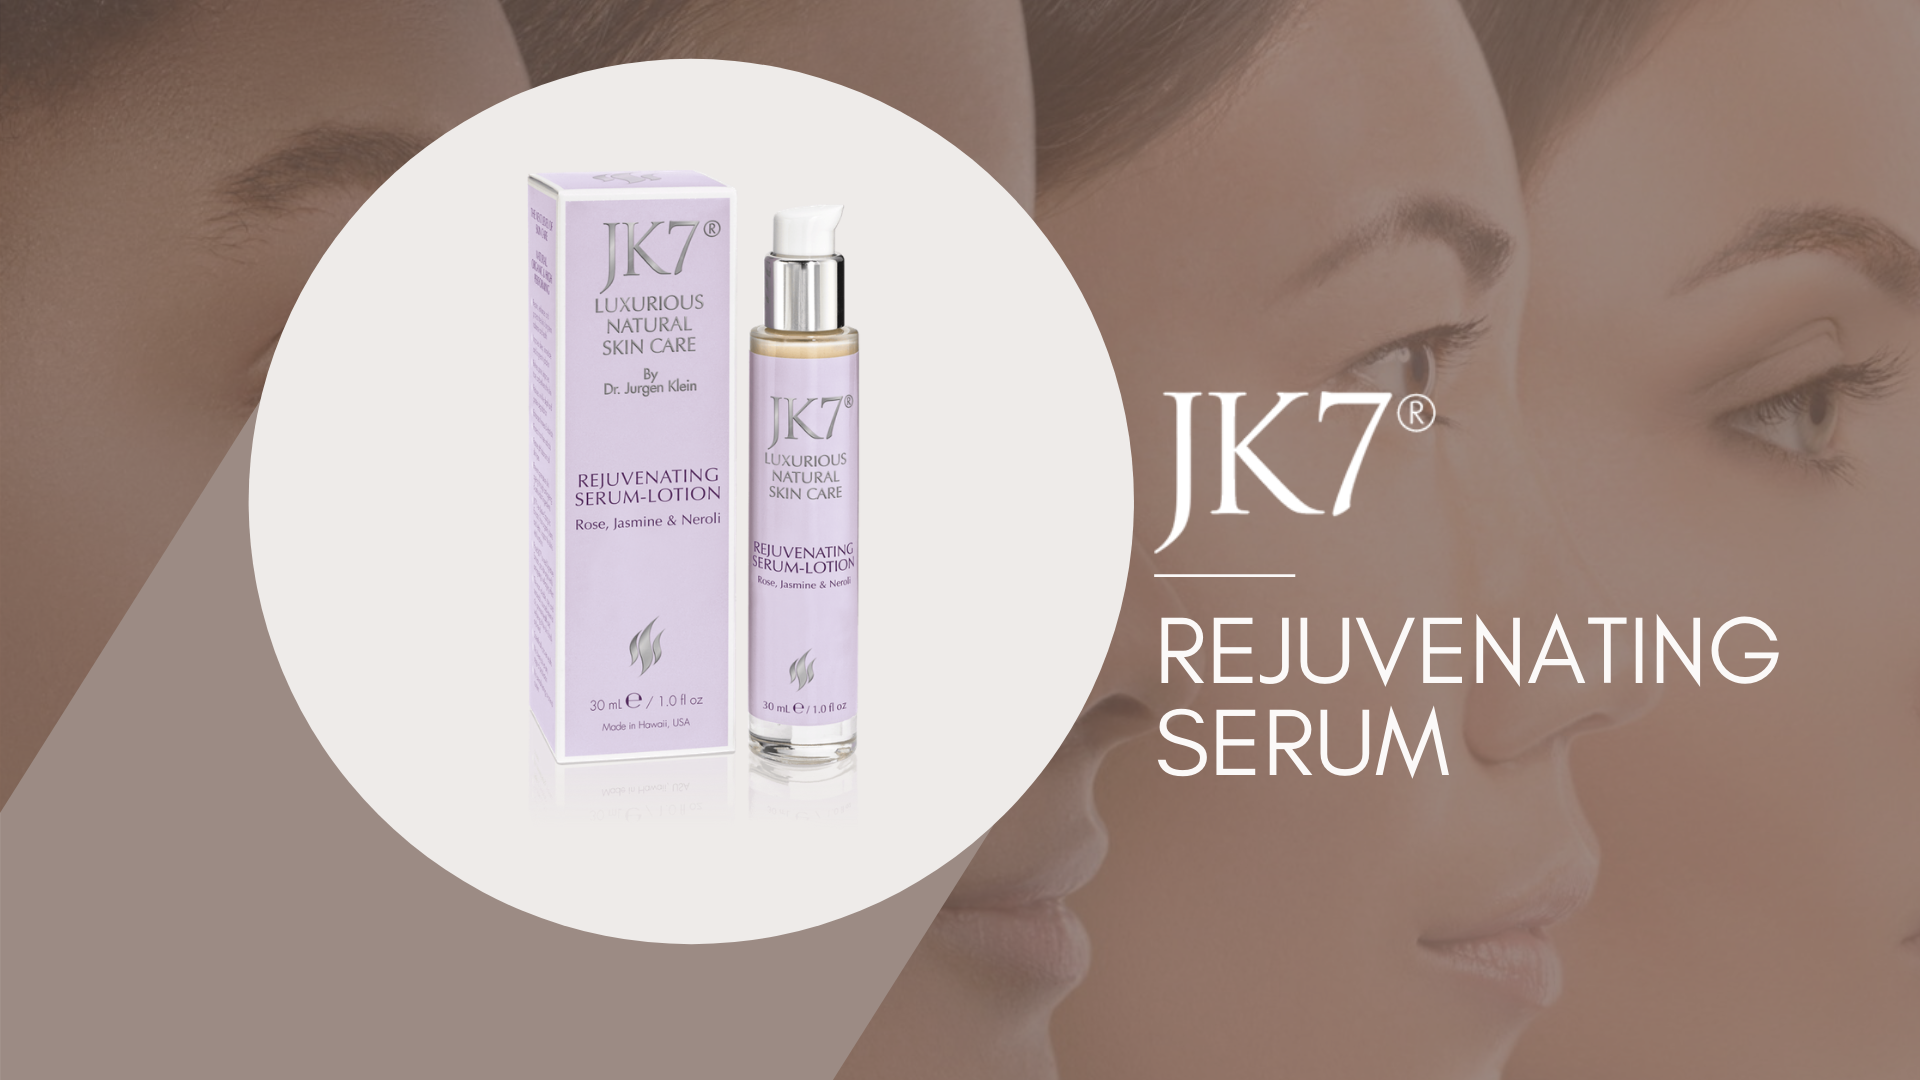 JK7 Rejuvenating Serum